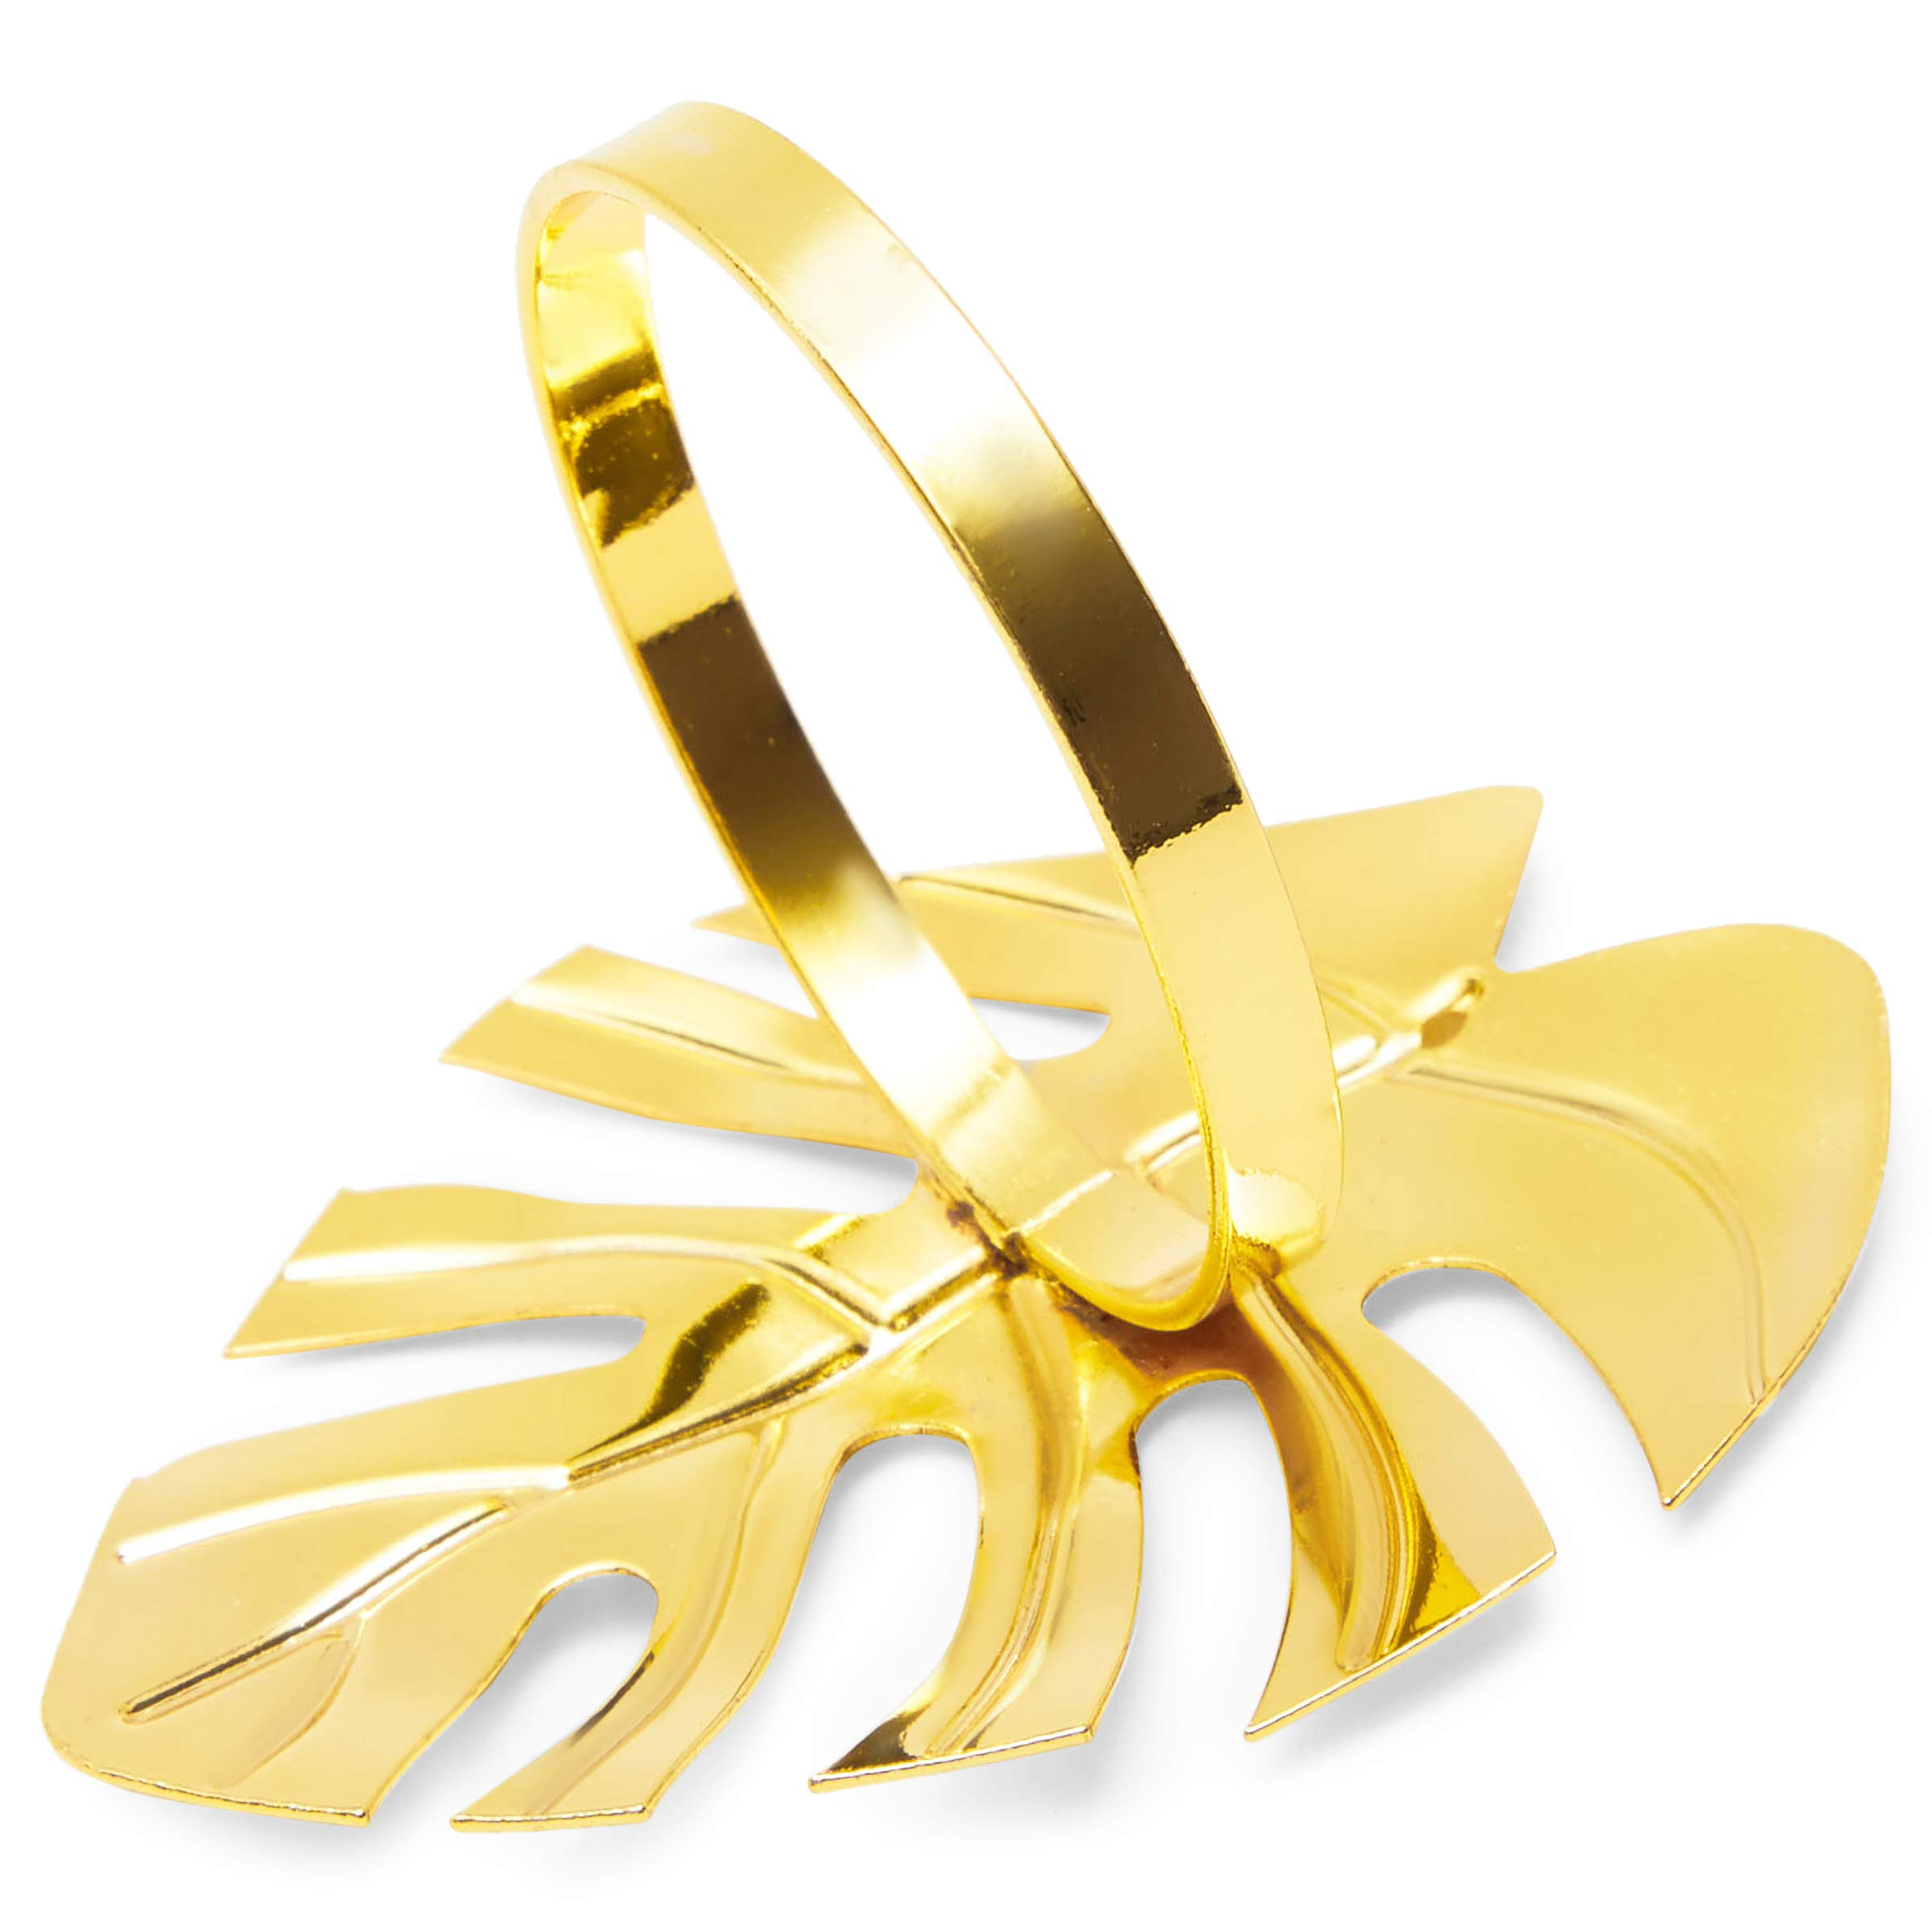 Juvale Tropical Leaf Napkin Rings 1.7 Inches, Gold, 12-Pack